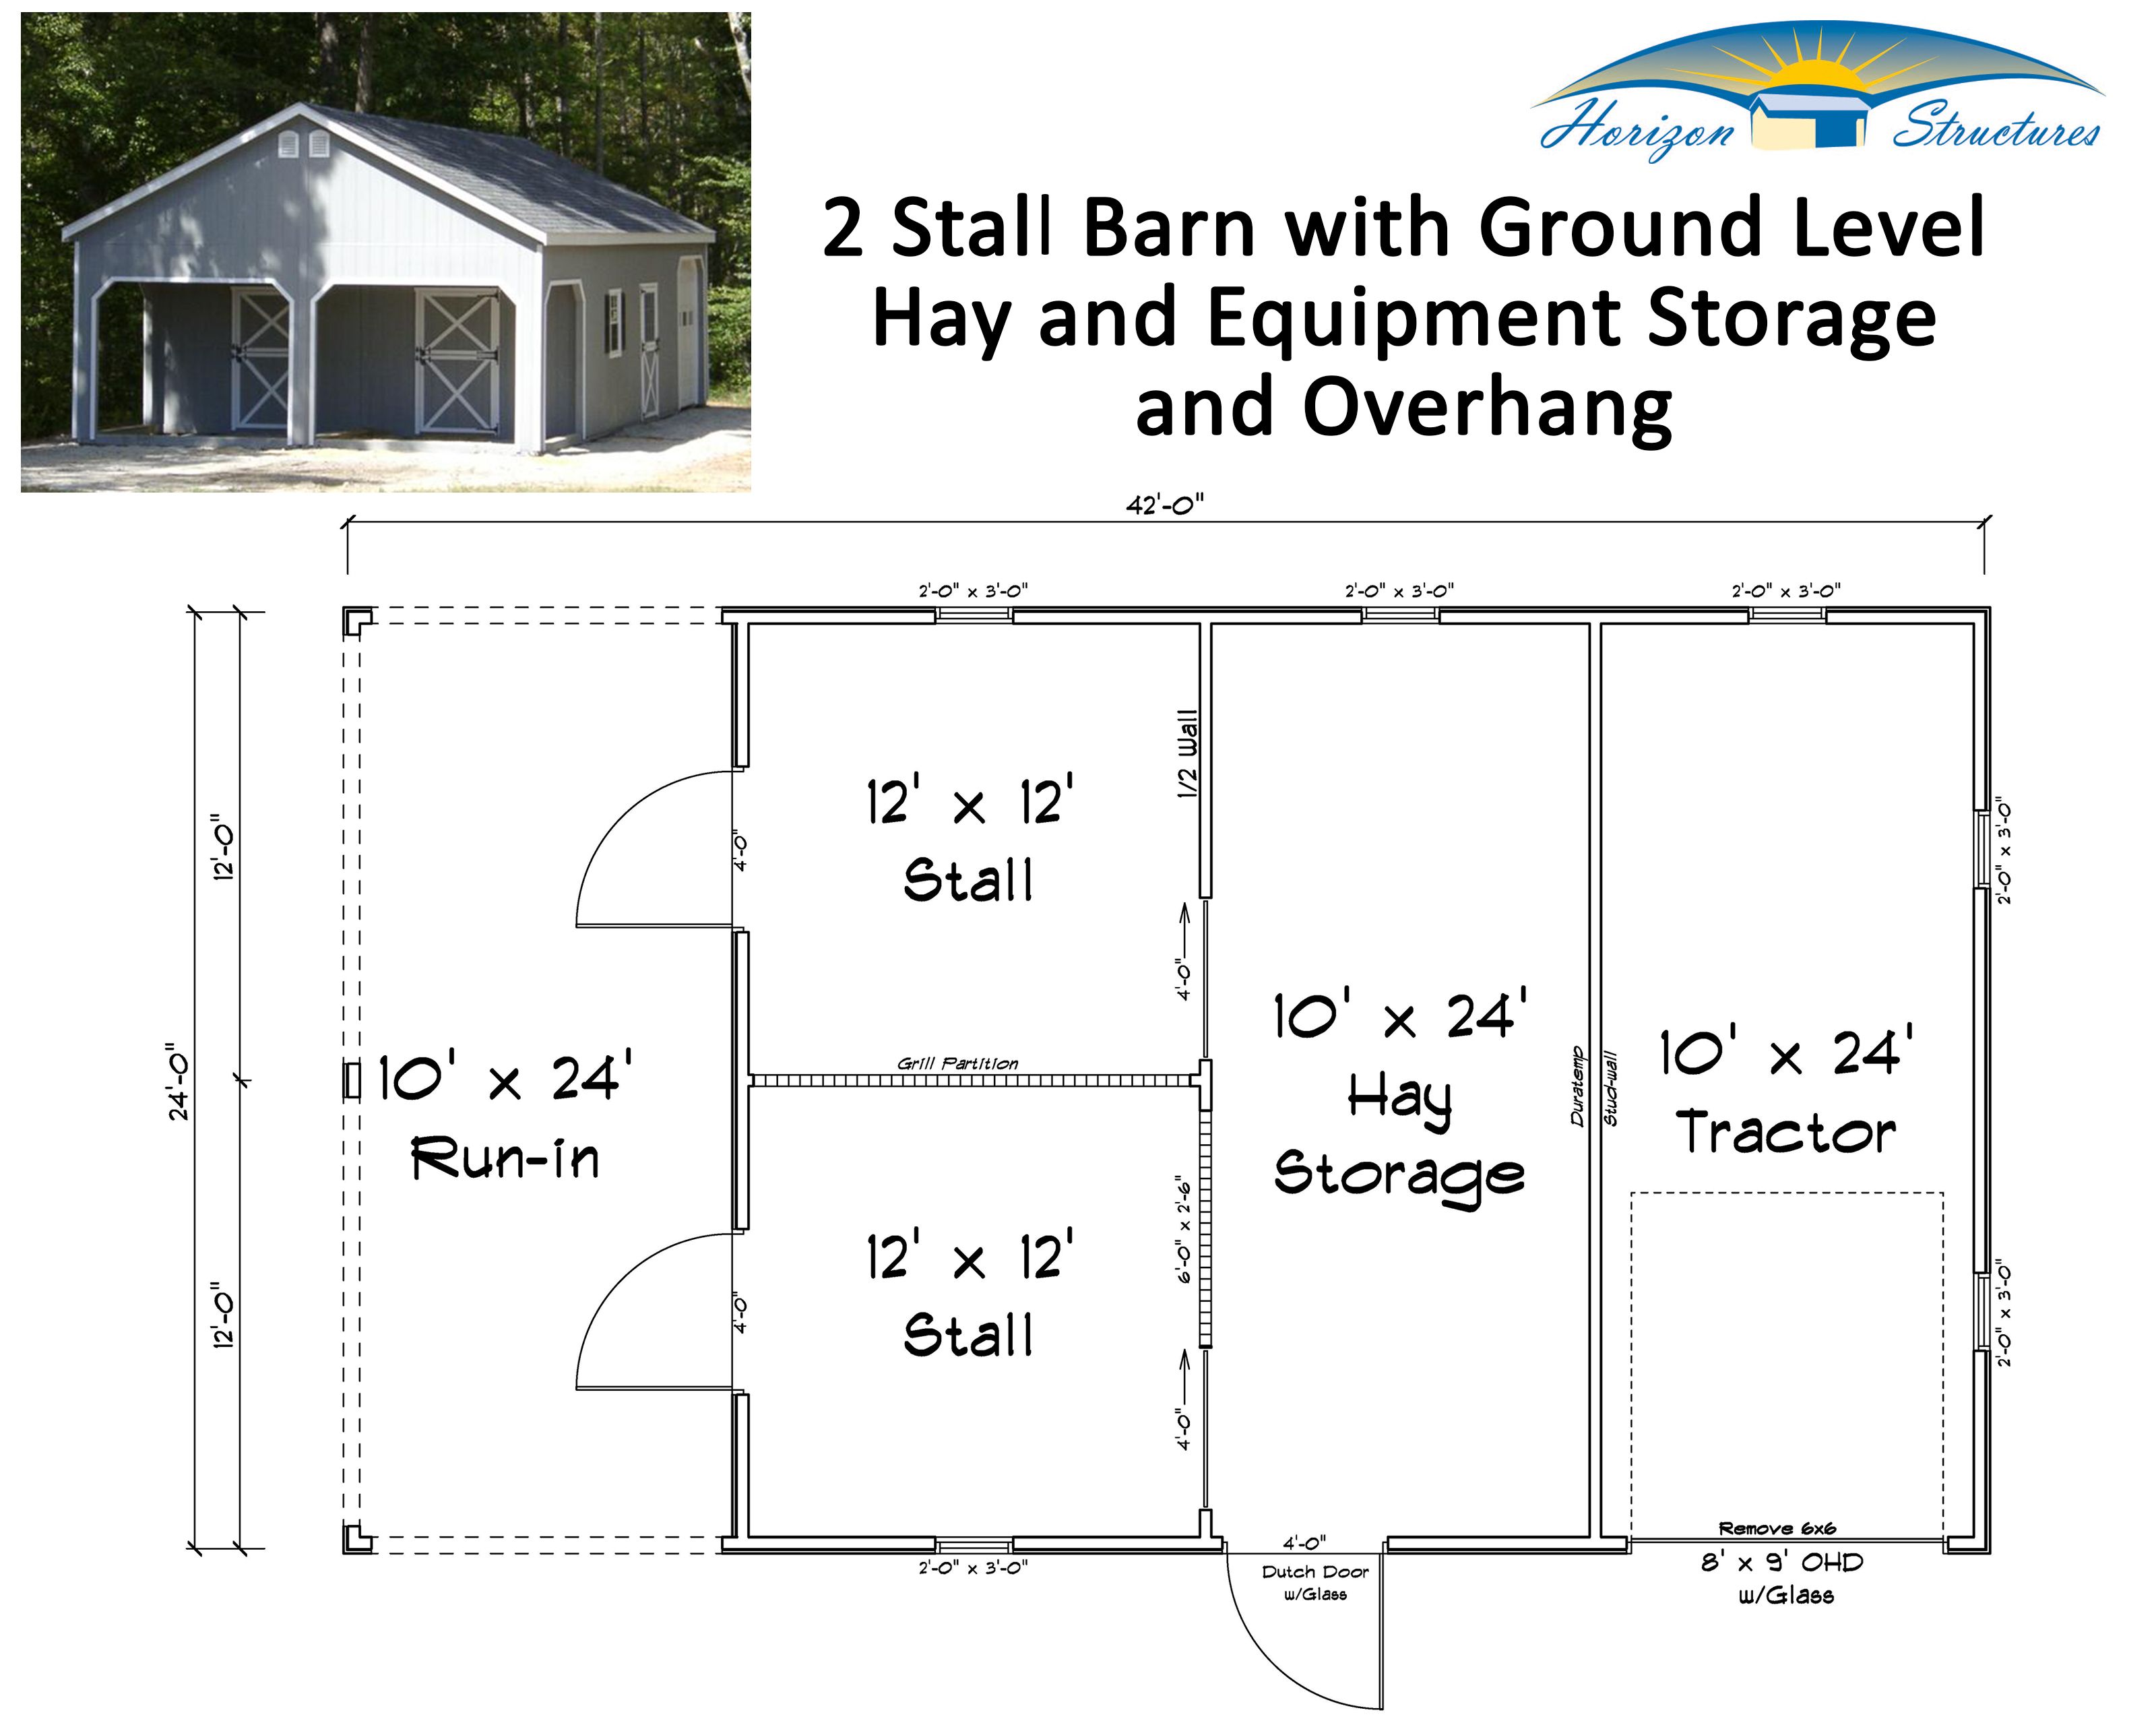 This 2 stall barn with hay and equipment storage could easily be modified to have 3 or 4 stalls brought to your farm in 2 modular sections